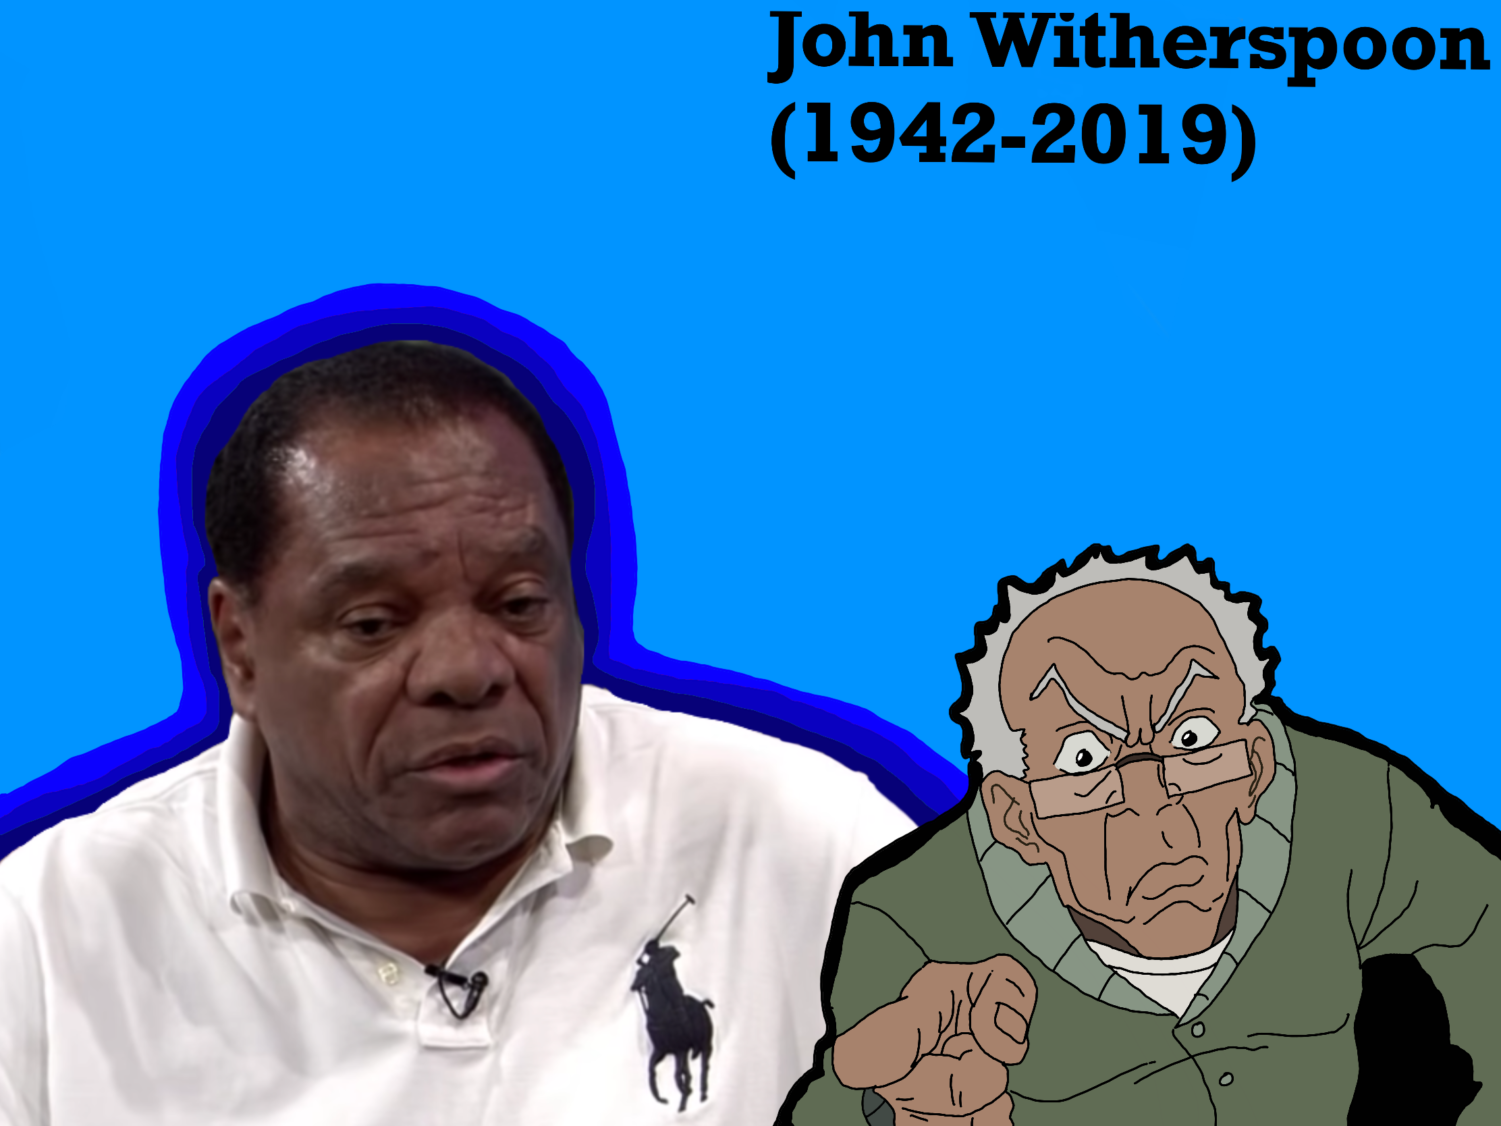 """Actor and comedian John Witherspoon died in October. Witherspoon is best known for his role in the comedy film Friday (1995) and the adult animated sitcom """"The Boondocks"""" (2004-2014)."""